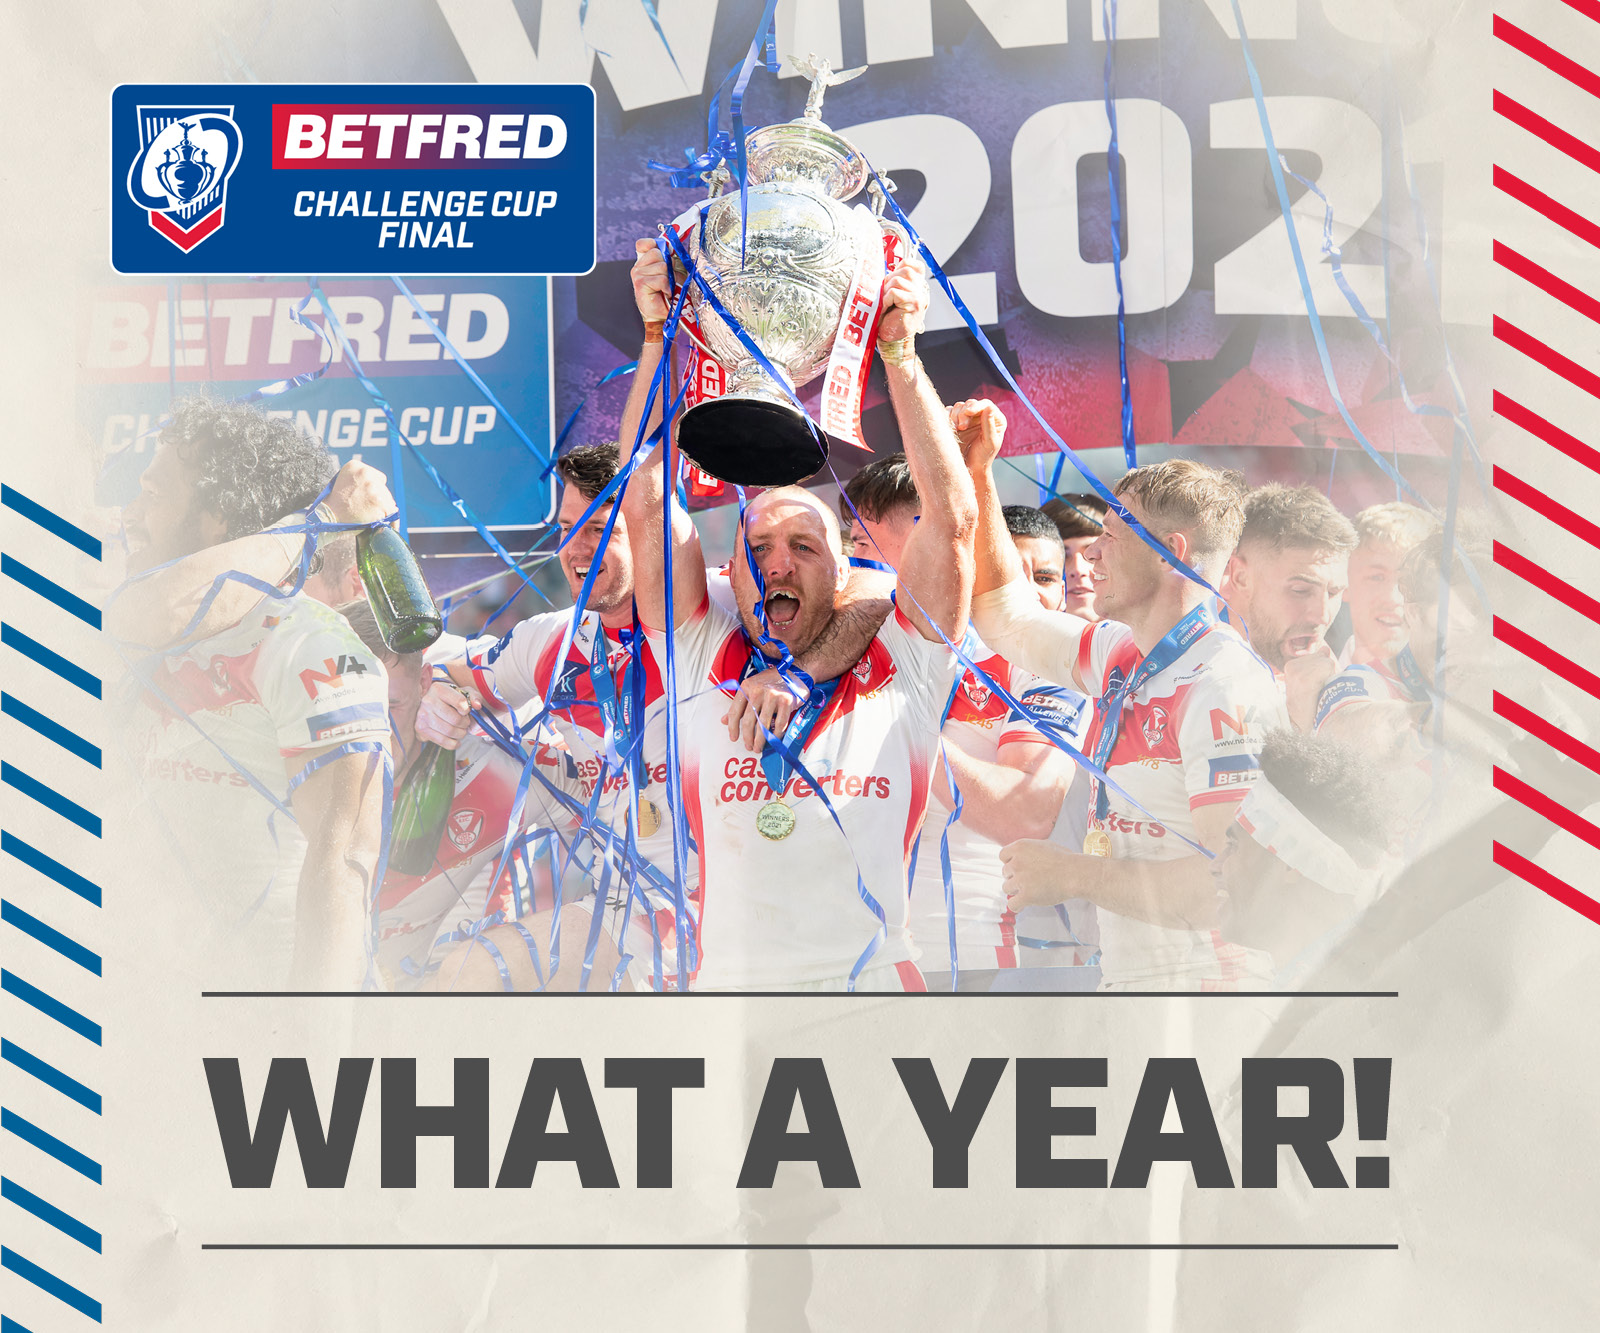 BETFRED CHALLENGE CUP | WHAT A YEAR!